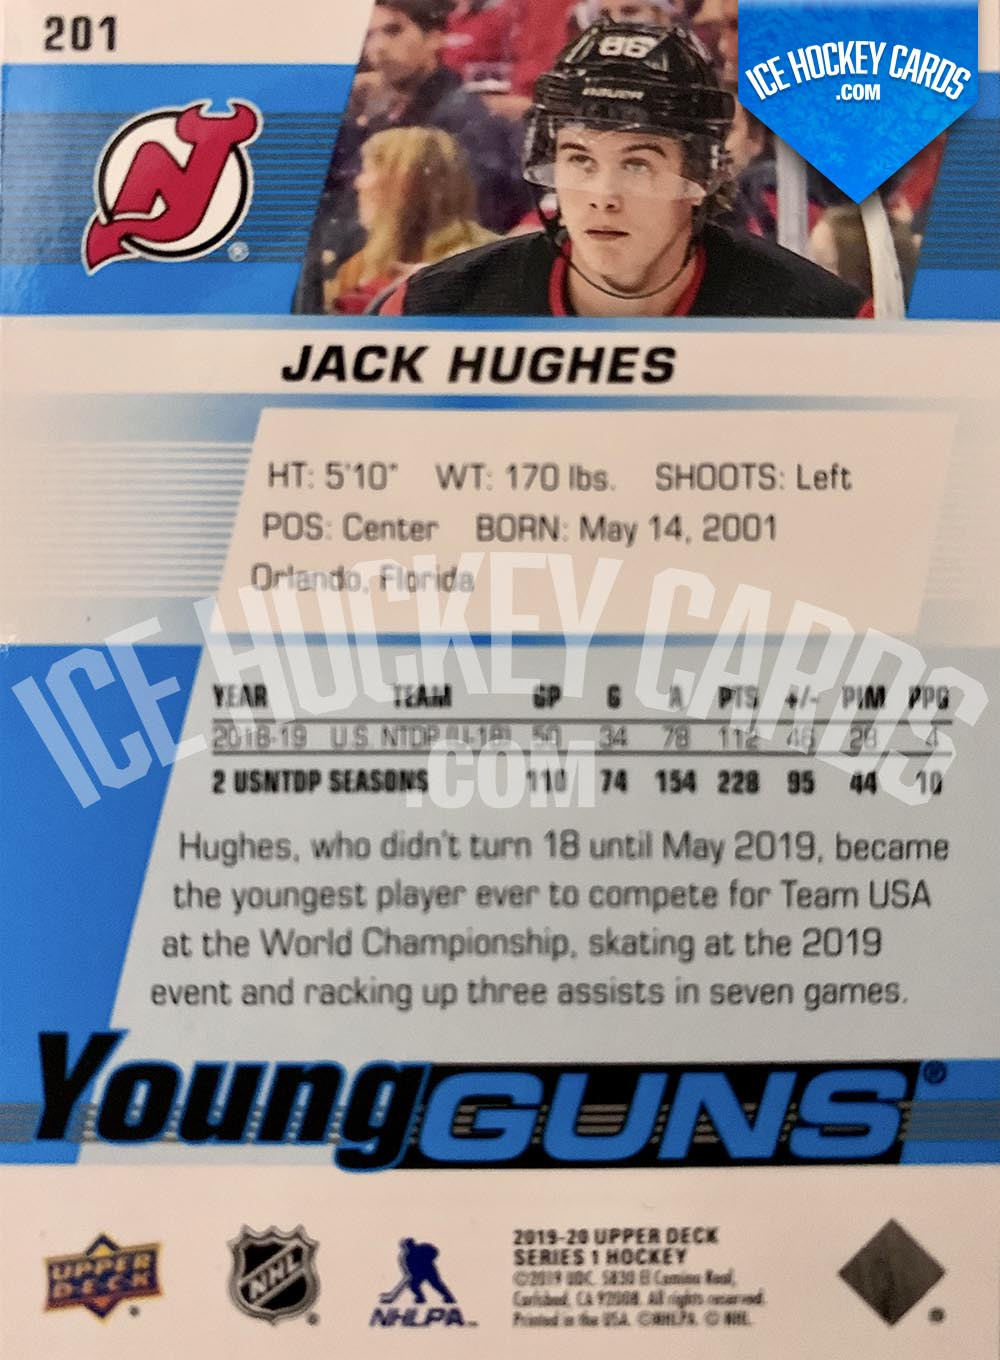 Upper Deck - Series 2019-20 - Jack Hughes Young Guns Rookie Card back